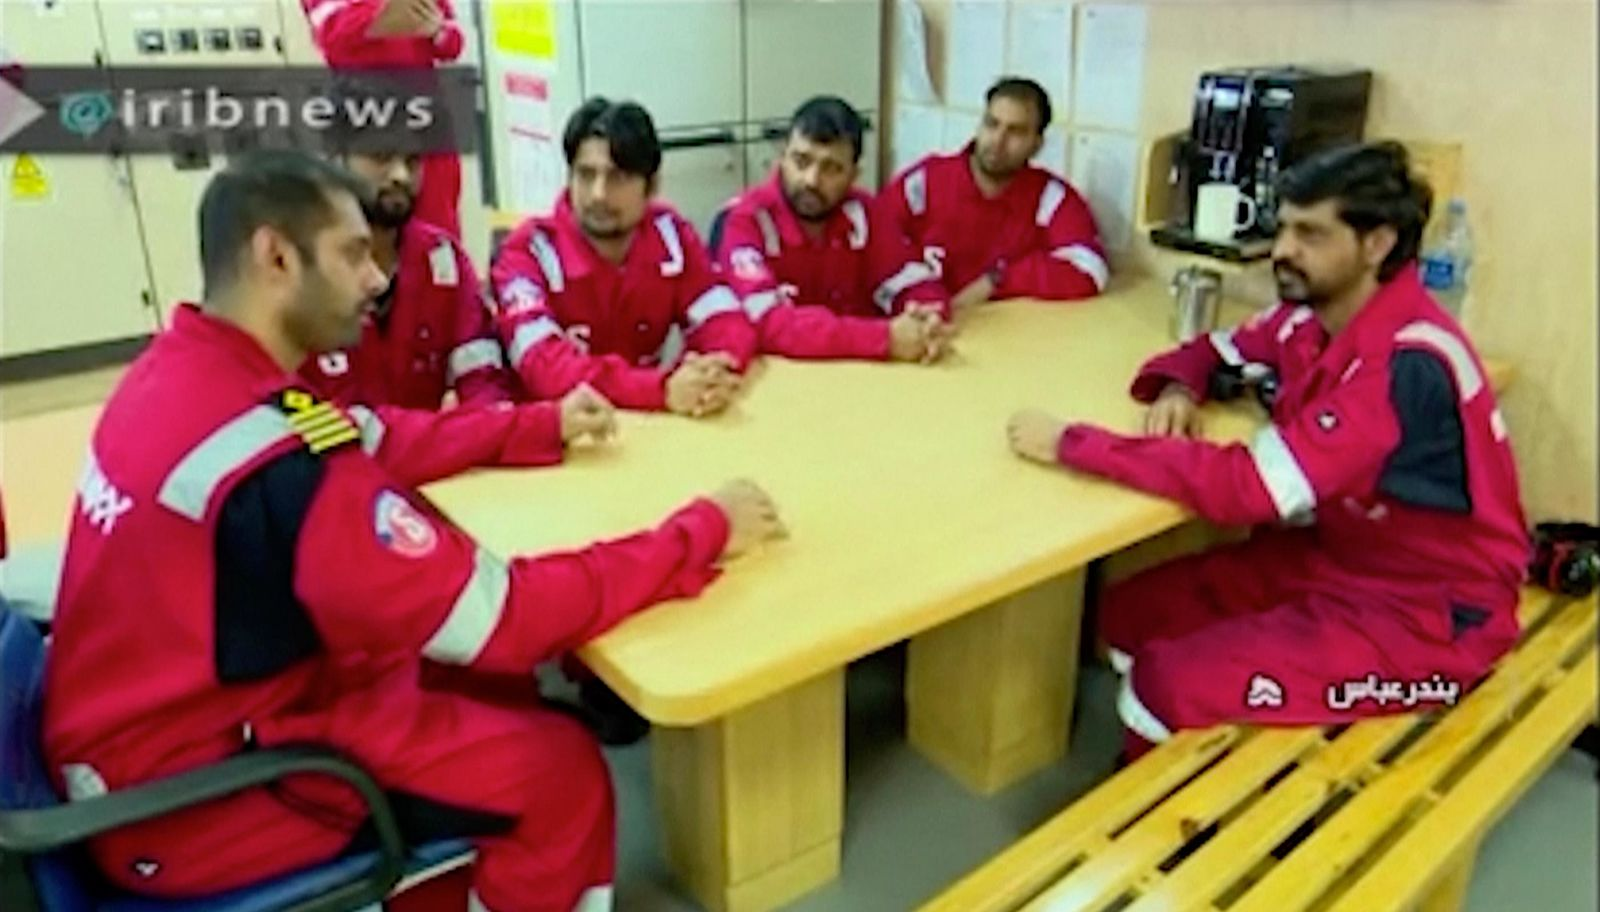 In this photo released by state-run IRIB News Agency, which aired on Monday, July 22, 2019, shows various crew members of the British-flagged tanker Stena Impero, that was seized by Tehran in the Strait of Hormuz on Friday, during a meeting. (IRIB News Agency via AP)